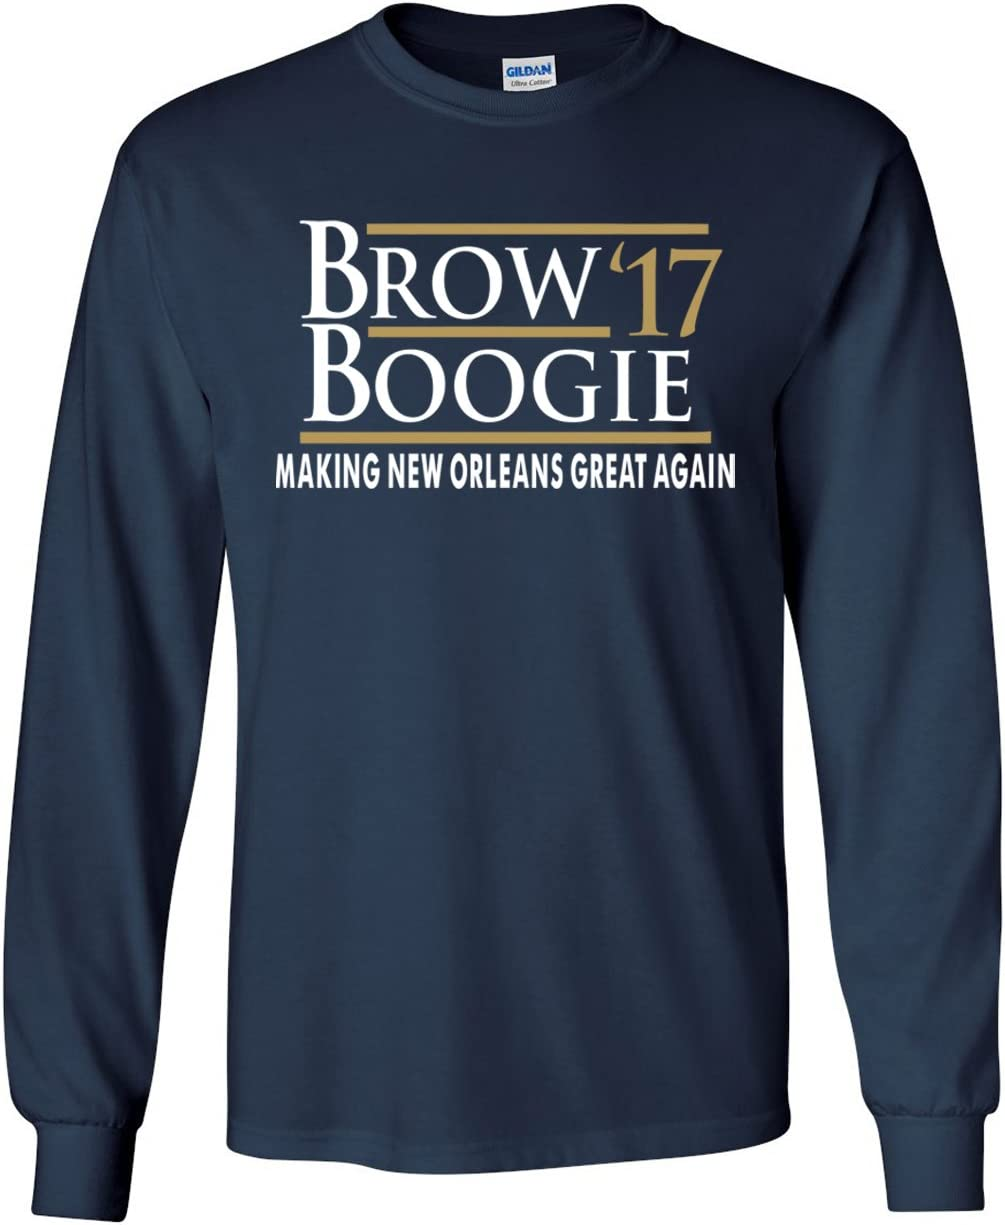 The Silo Long Sleeve Navy New Orleans Brow Boogie 17 T-Shirt